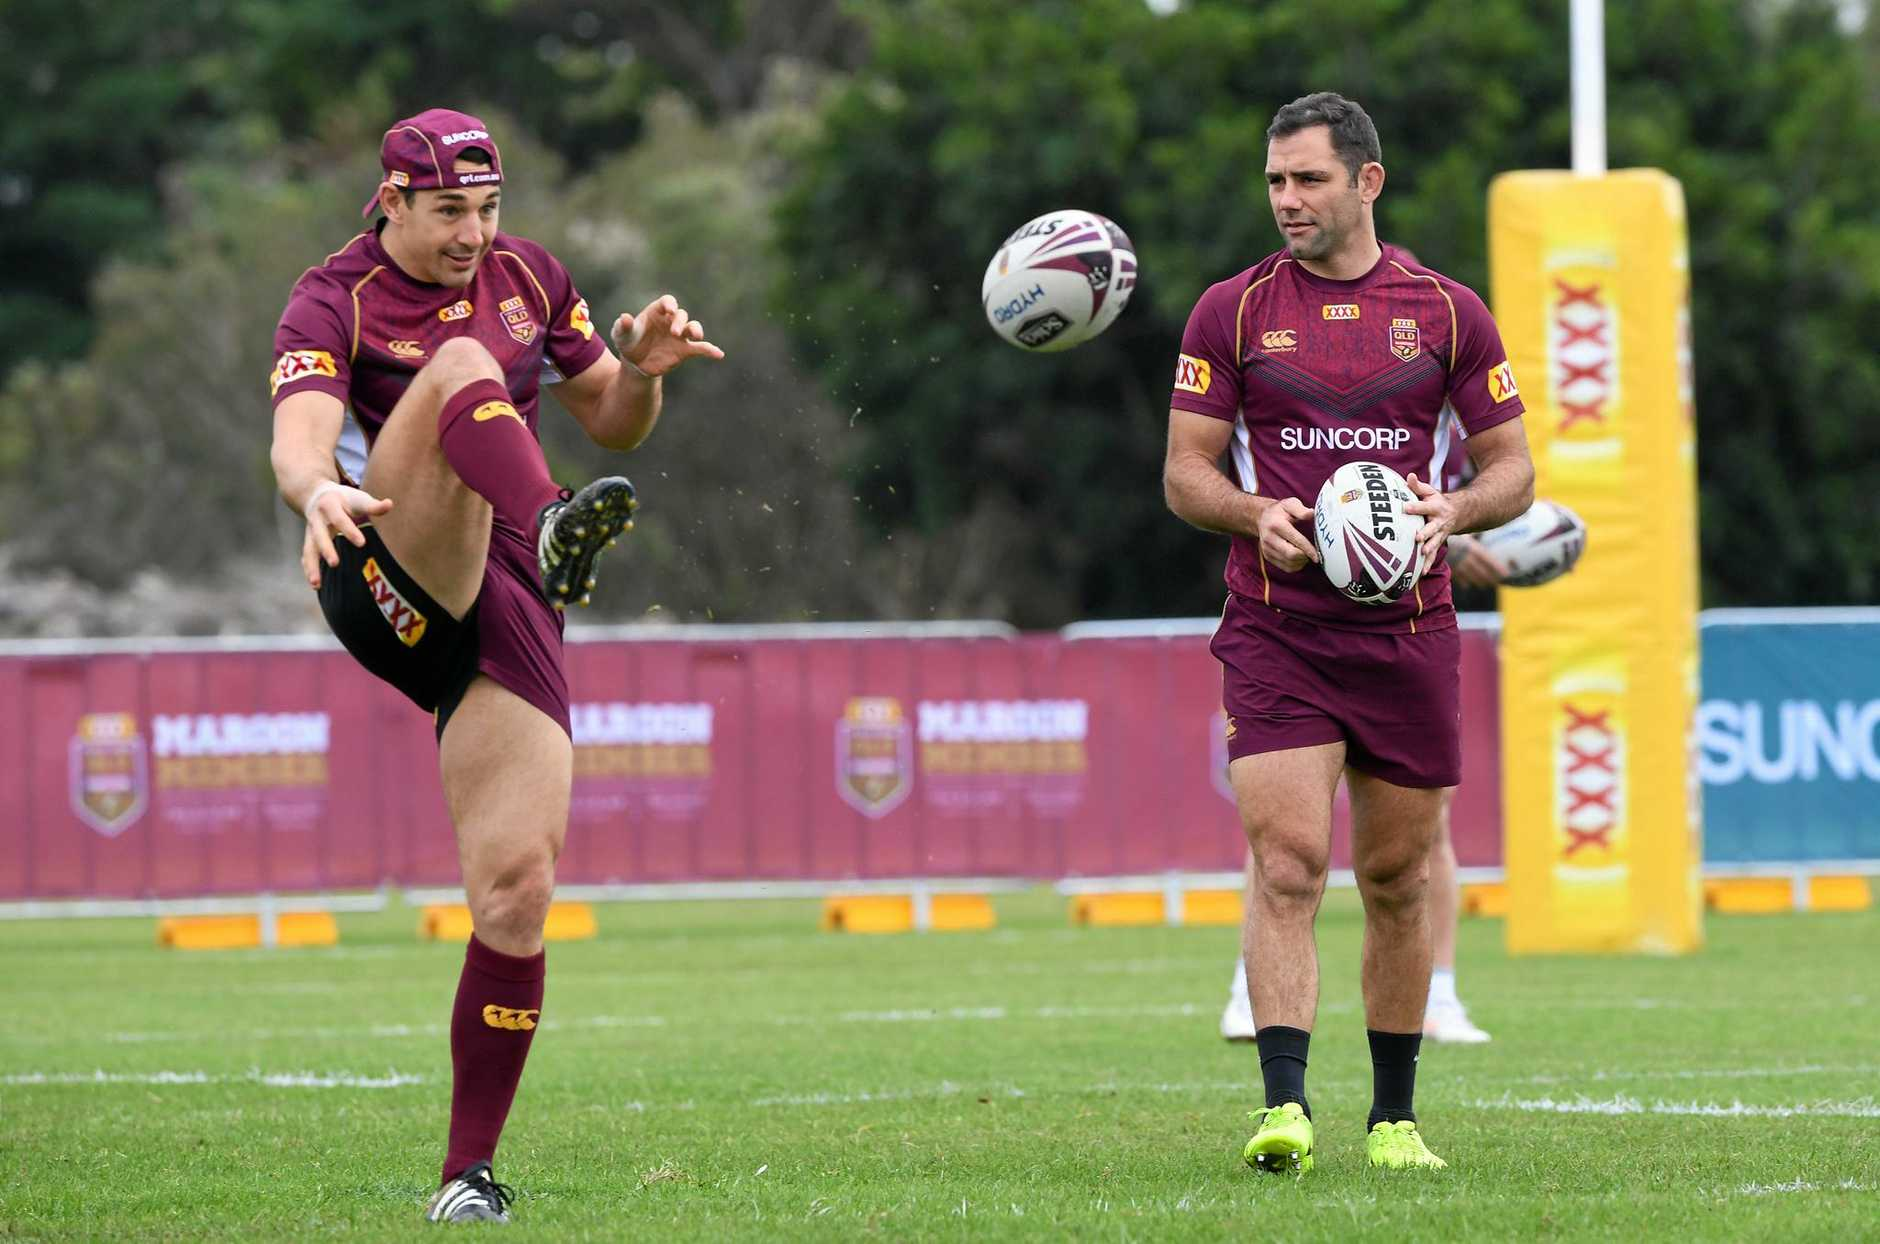 Billy Slater (left) and Cameron Smith during the Queensland State of Origin team training session on the Gold Coast, Friday, June 16, 2017. (AAP Image/Dave Hunt) NO ARCHIVING